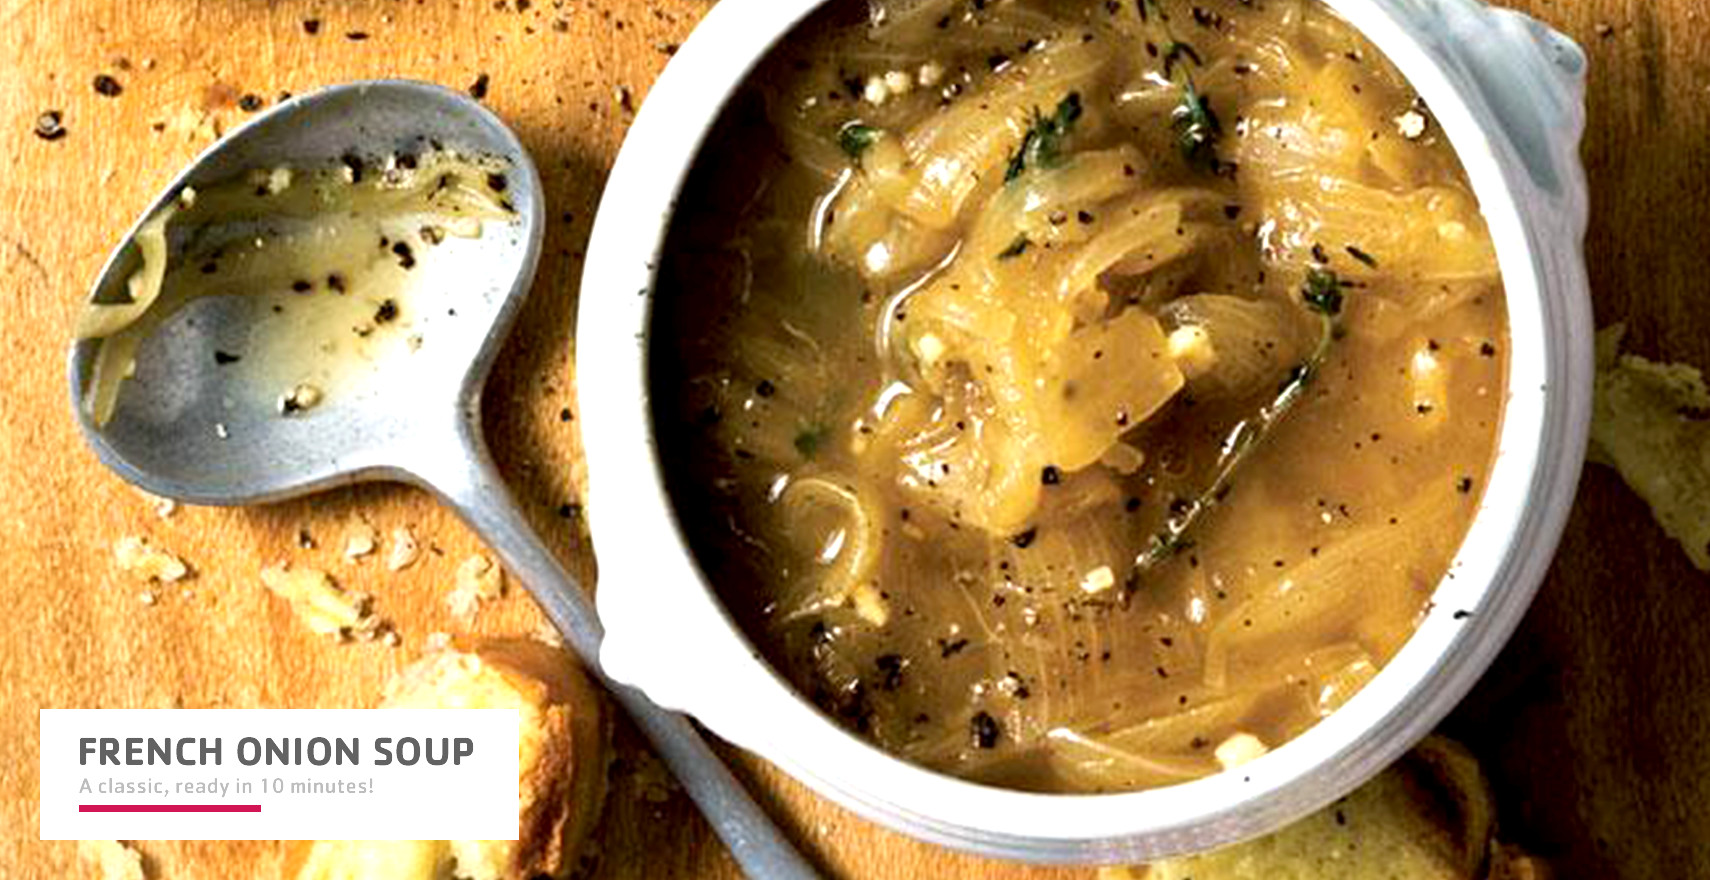 French onion soup header image.jpg